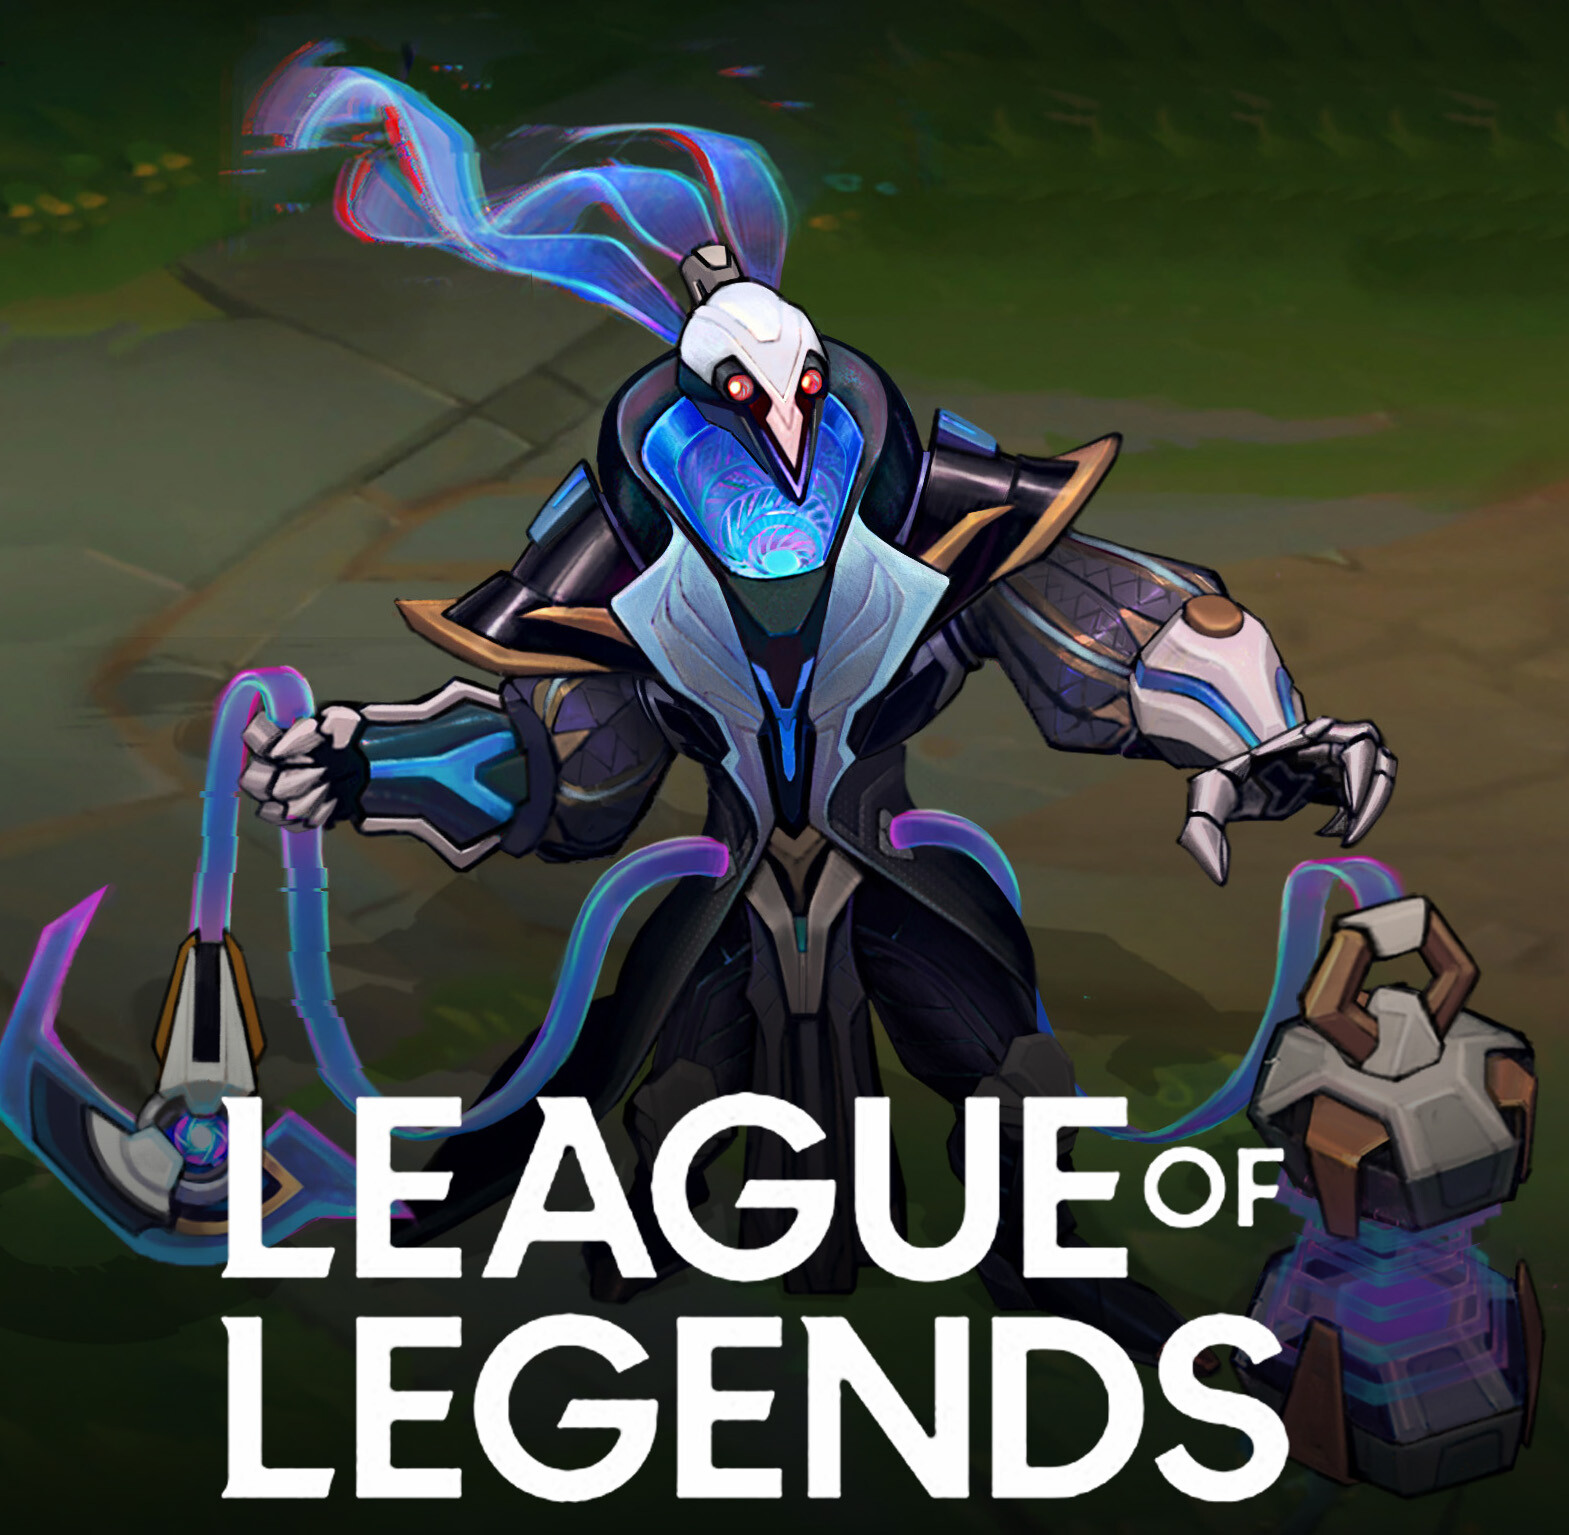 Moxuan Zhang Pulsefire Thresh Concept For League Of Legends Track and get notified when league of legends skin, pulsefire thresh, goes on sale. moxuan zhang pulsefire thresh concept